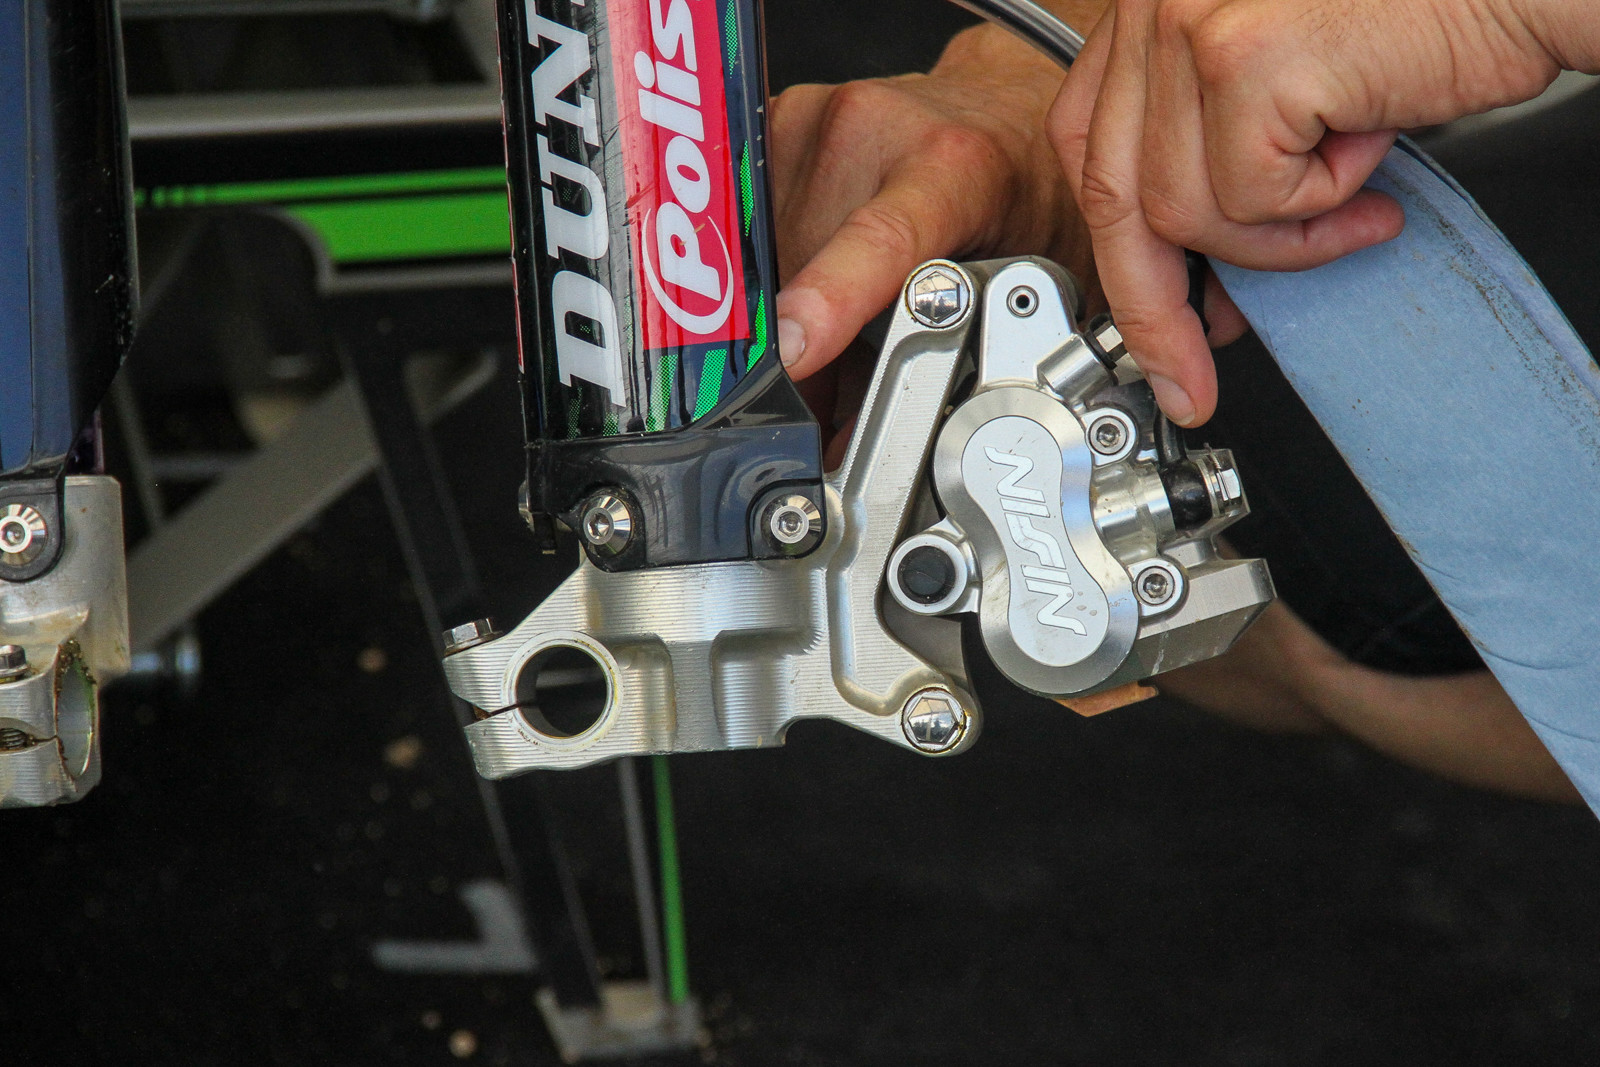 KRT in MXGP uses the Magnesium Nissin brake claiper like the US team, although the coatings are stripped off. So it's a bit more low-key to spot.